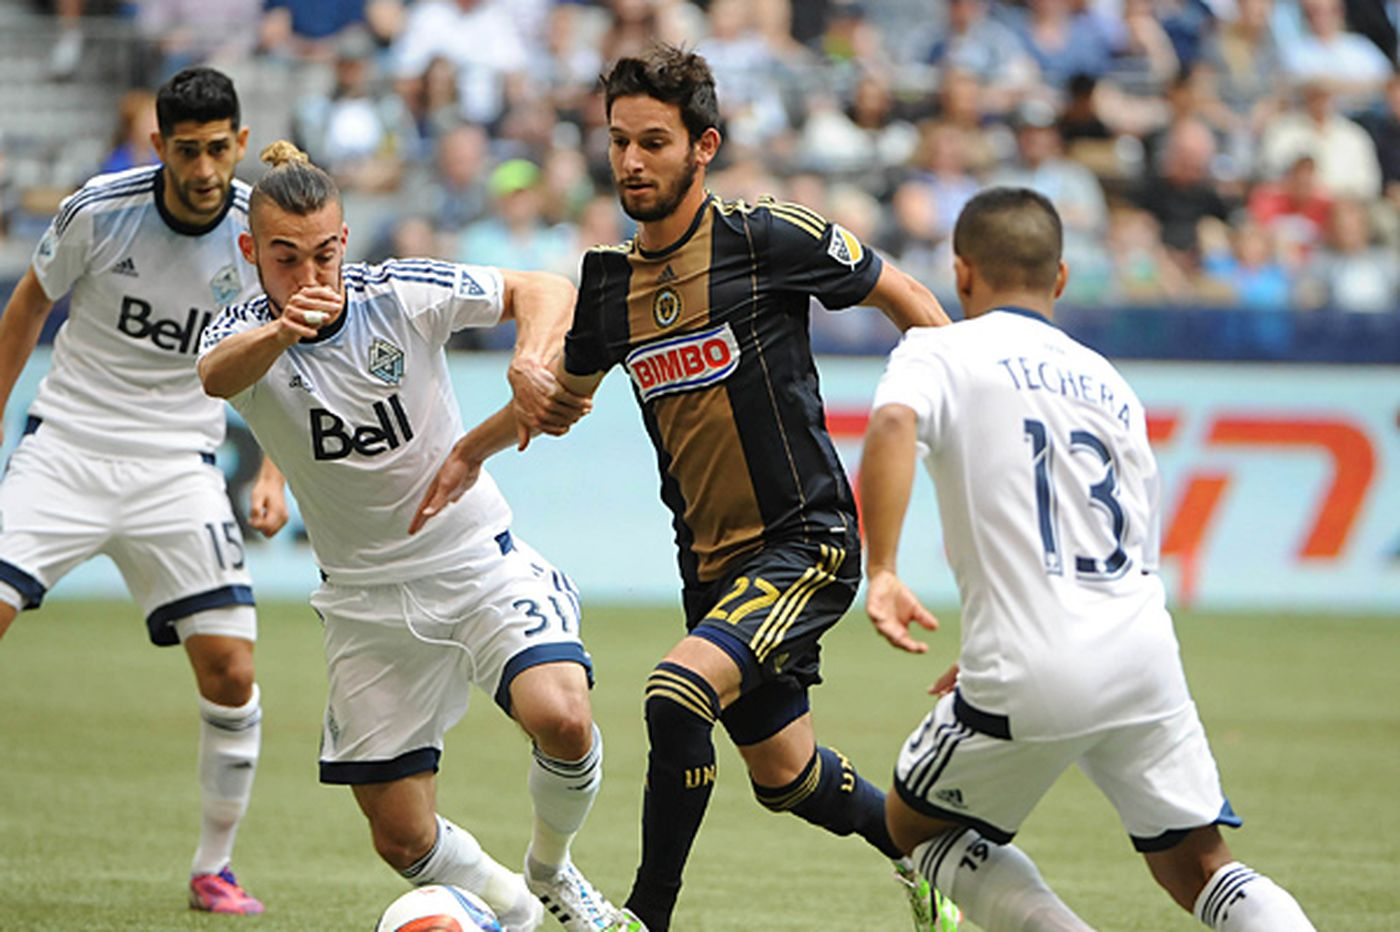 Union fall to Whitecaps for fourth straight loss